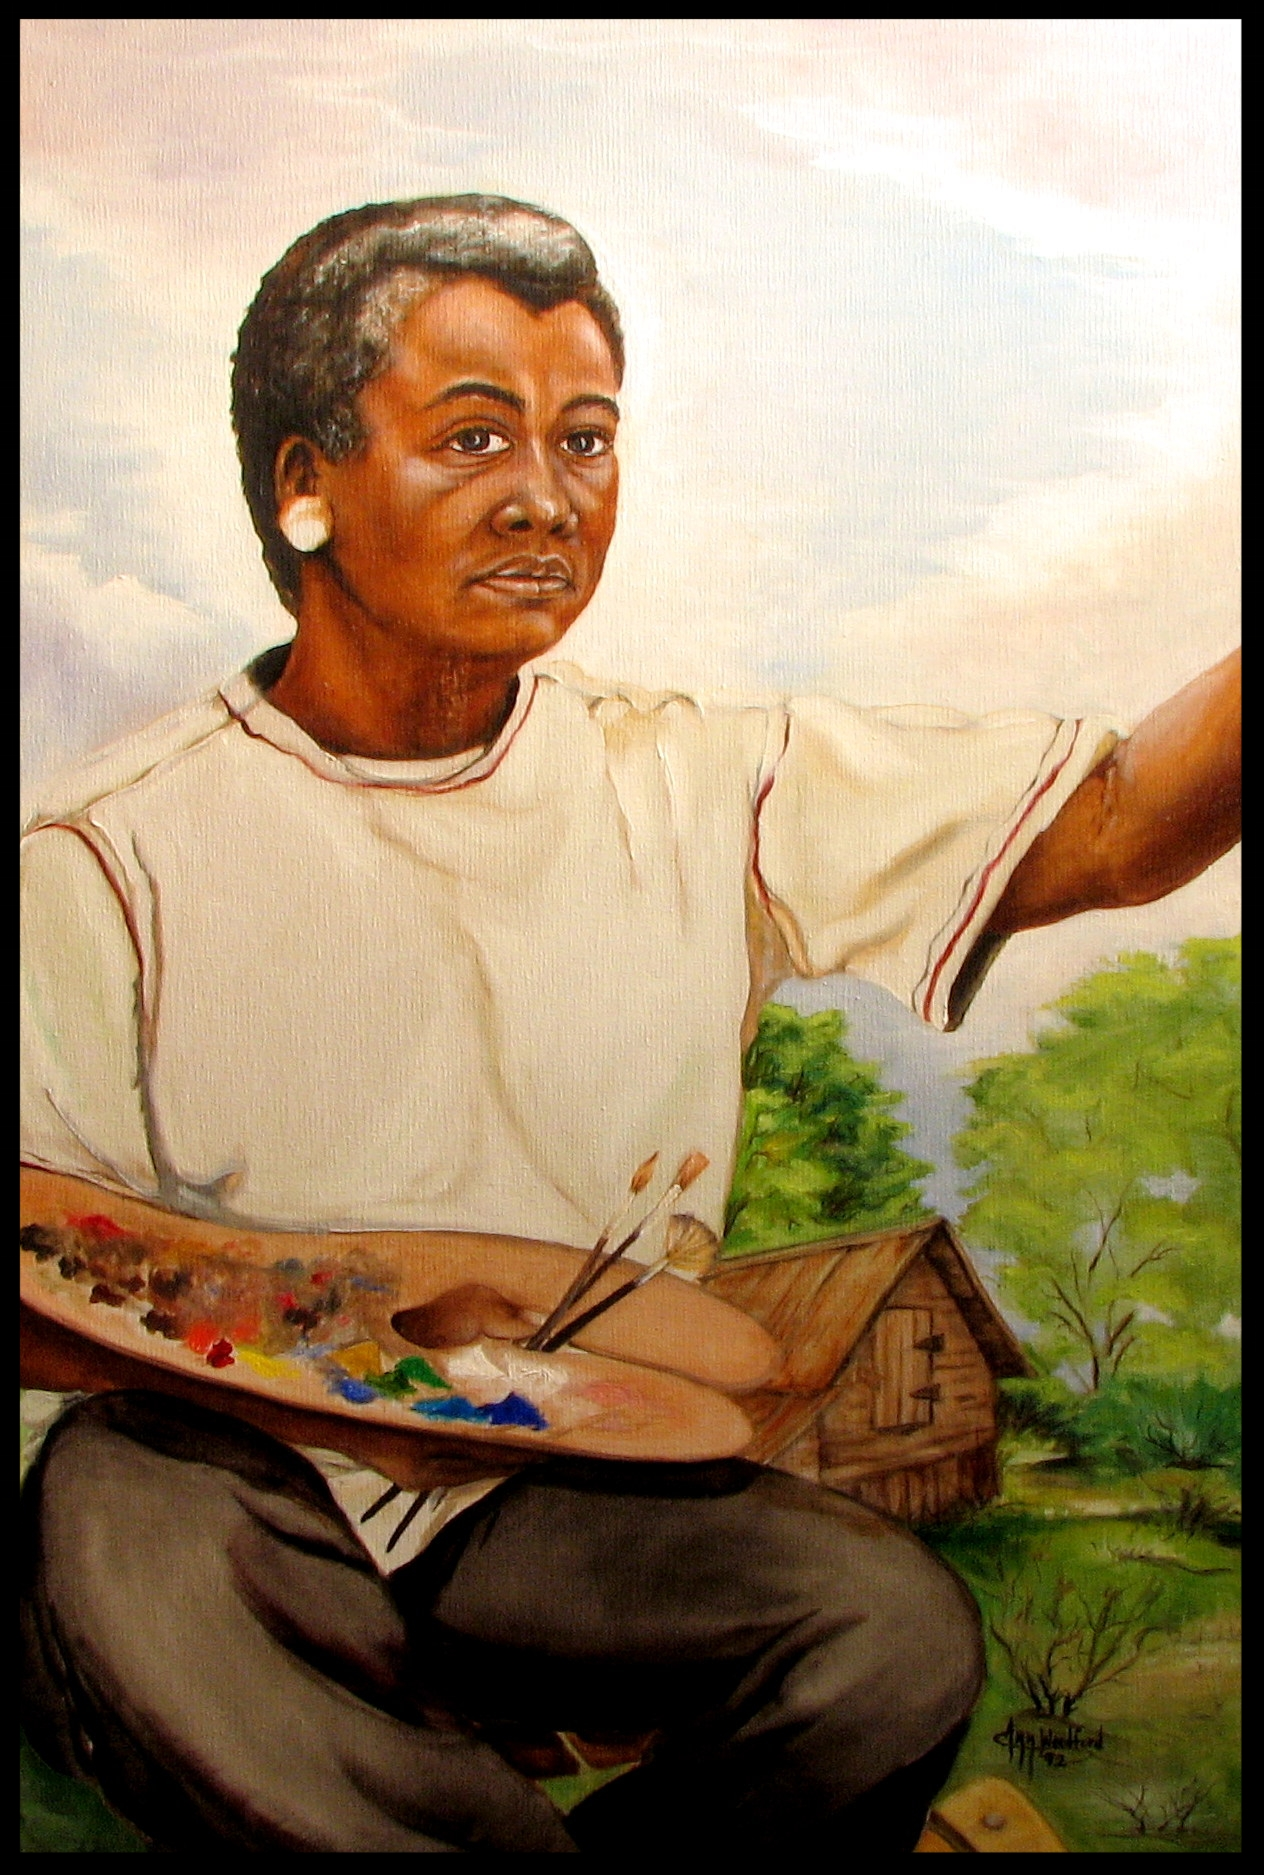 Ann Woodford painting of a black artist